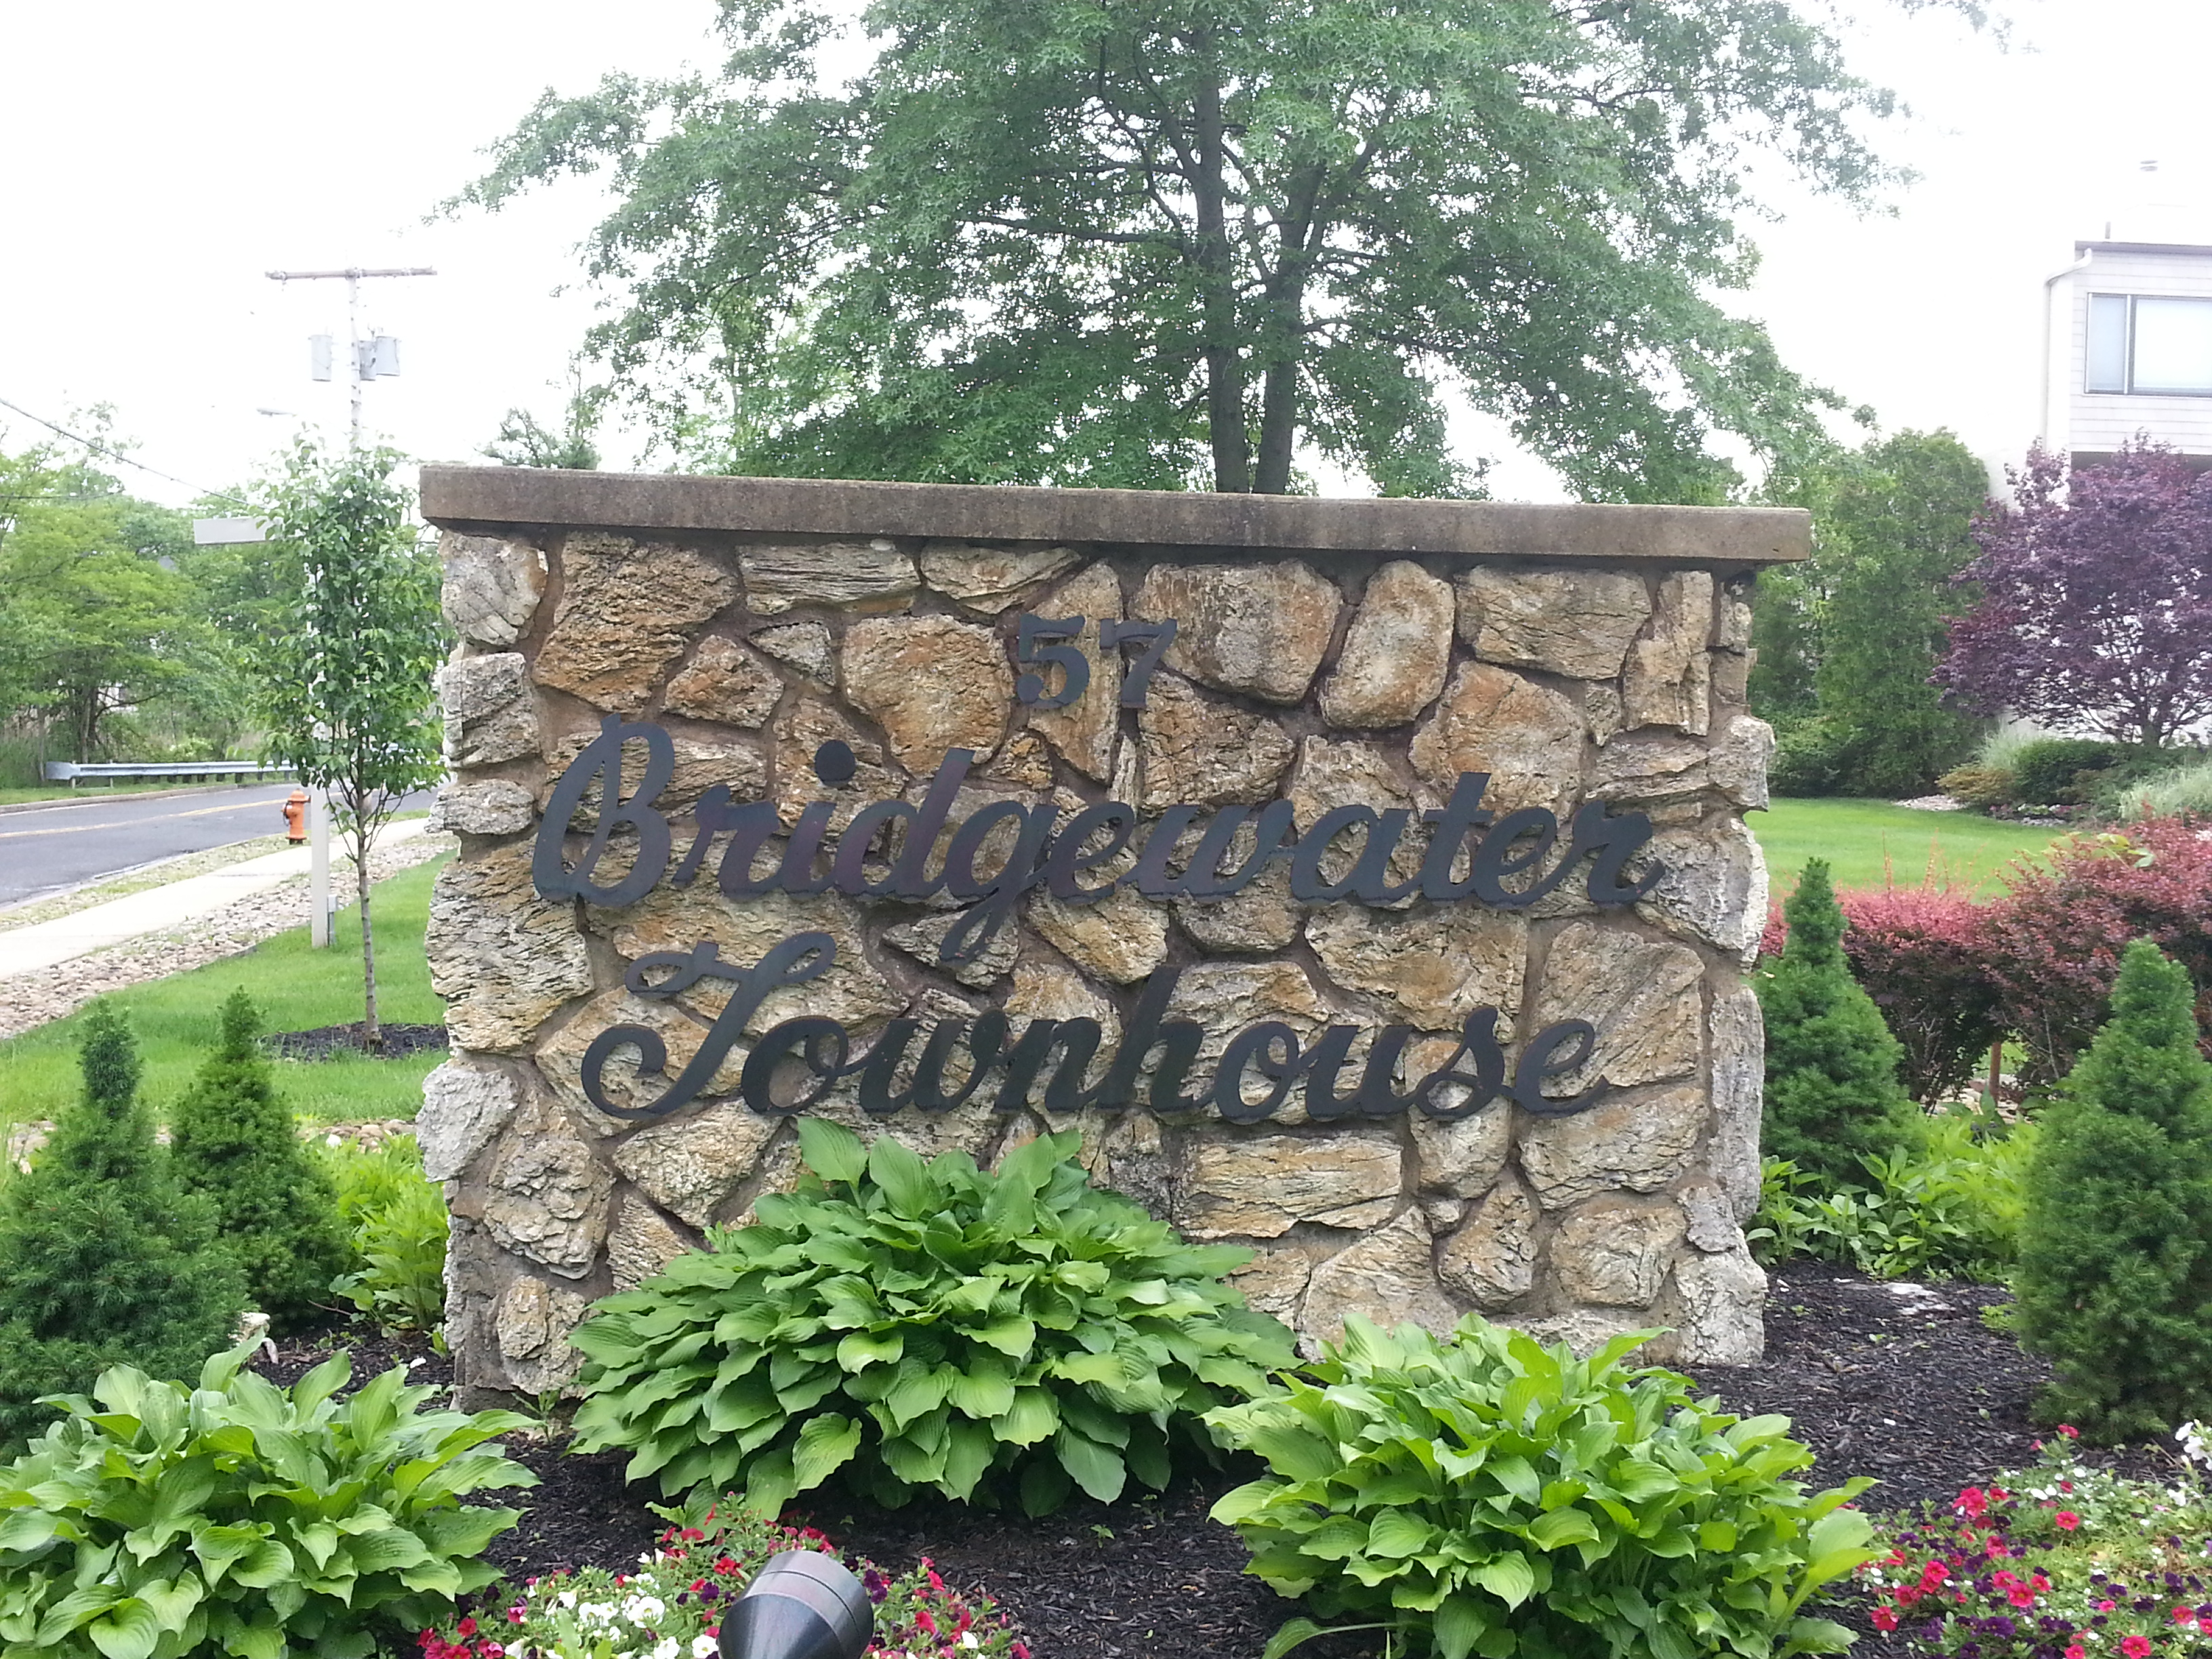 Bridgewaters, located at 57 Bridgewaters Dr., Oceanport, is a waterfront community of 24 townhouses.